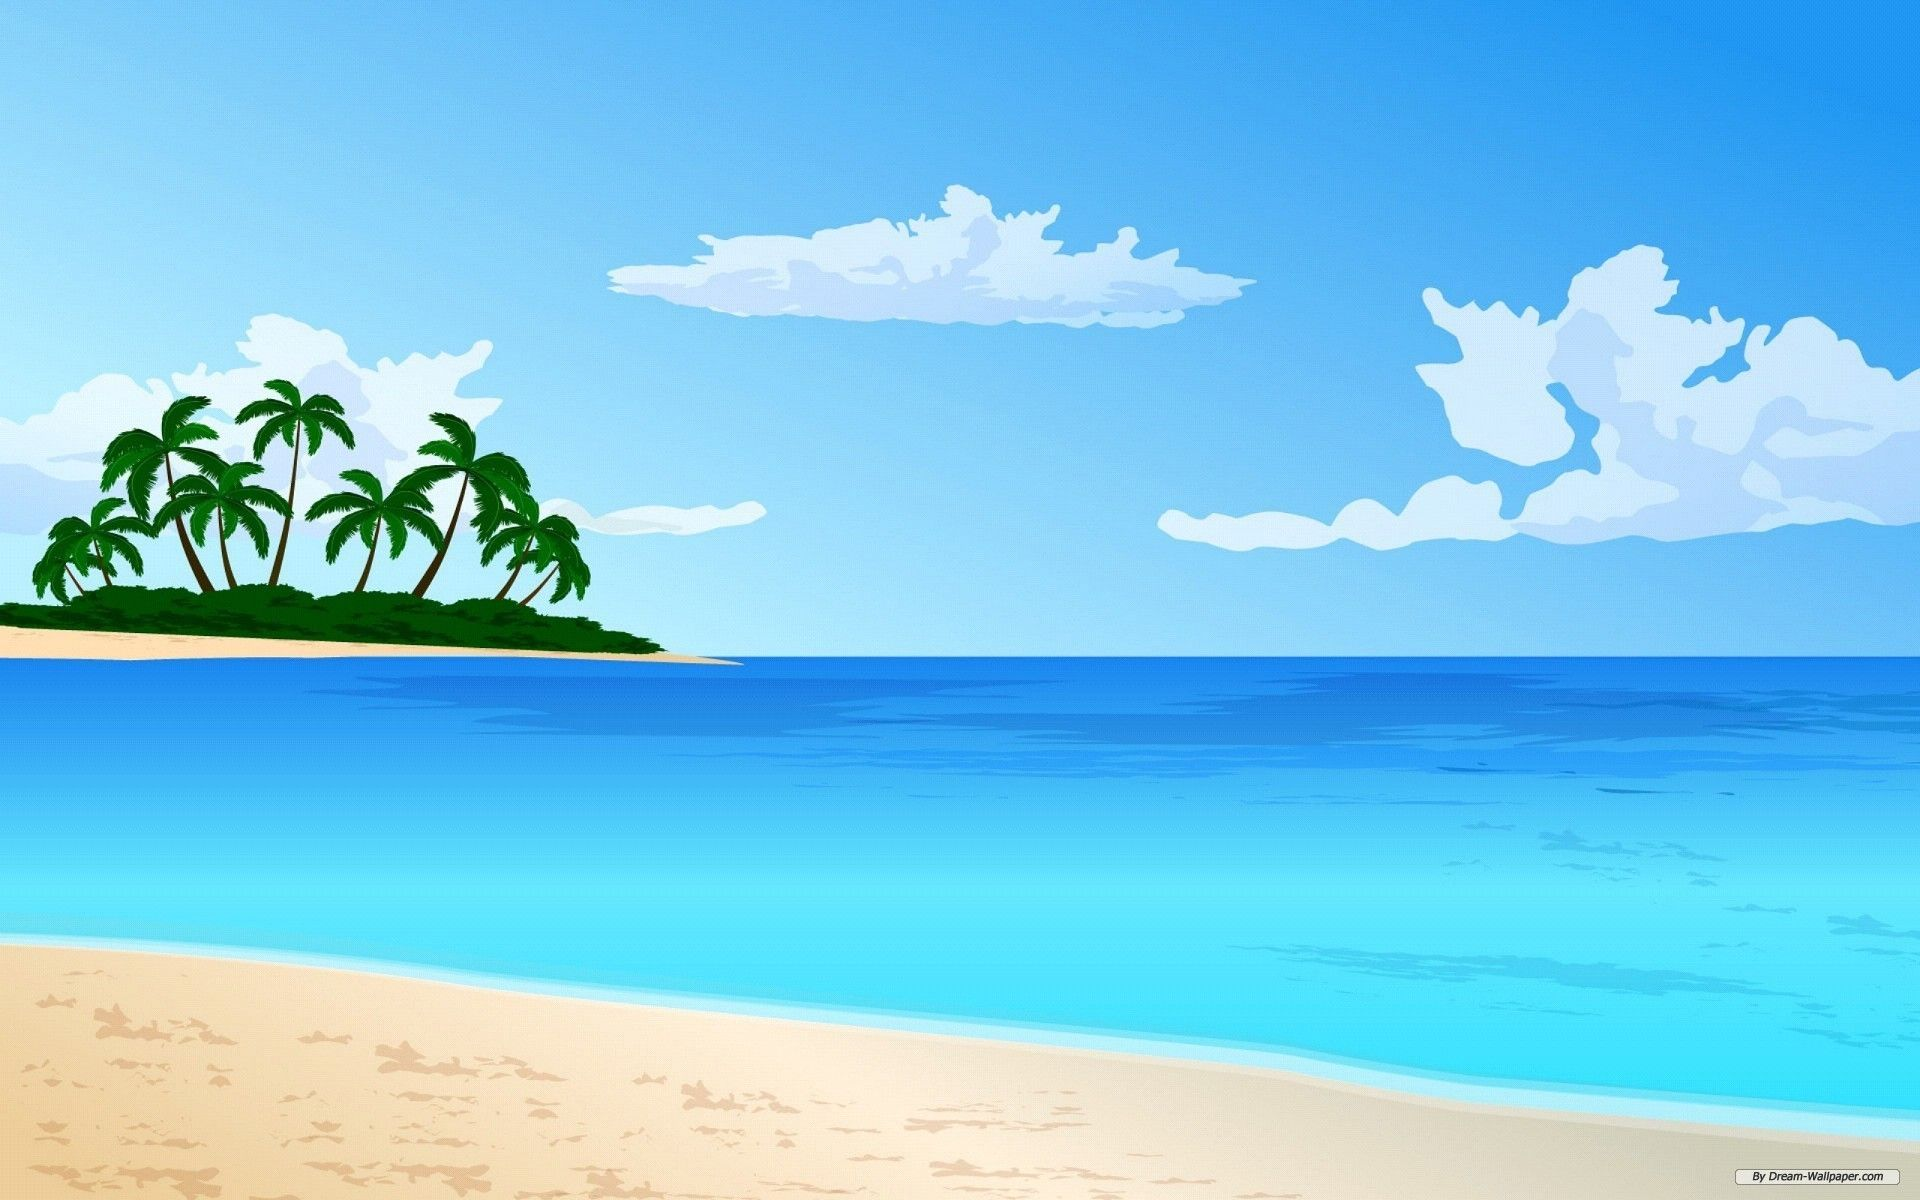 Beach wallpaper hdwallsdeks pinterest beach background free beach clipart of summer beach scenes clipart 1 image for your personal projects presentations or web designs voltagebd Image collections